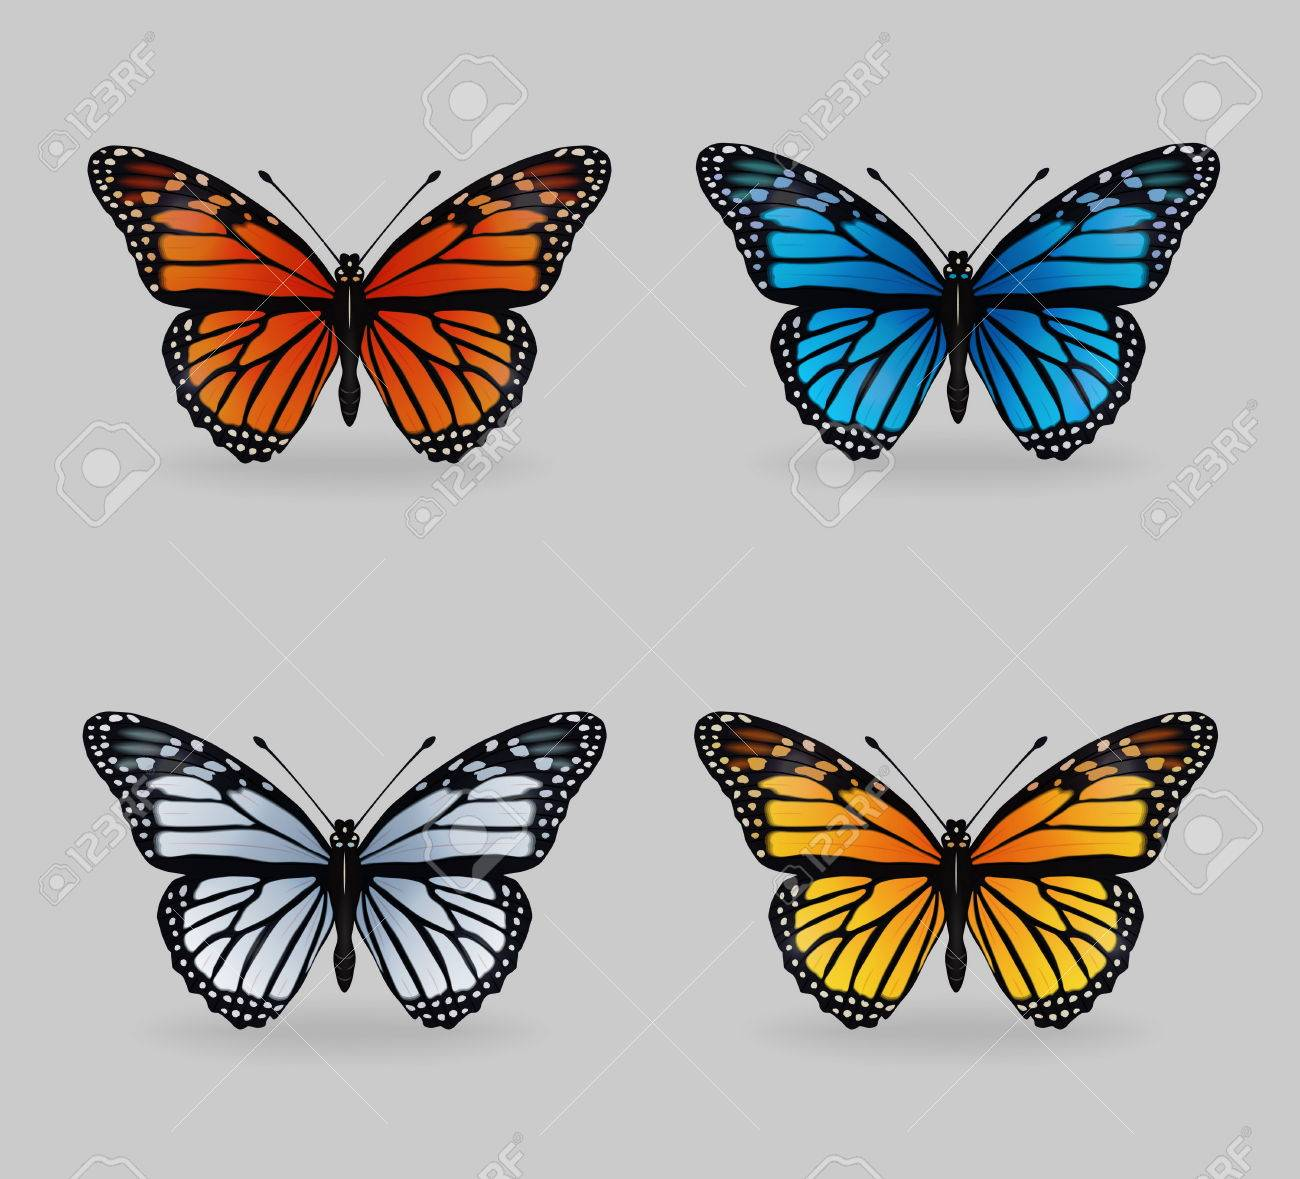 A Collection Of Vibrant Multy Color Insect Monarch Tiger